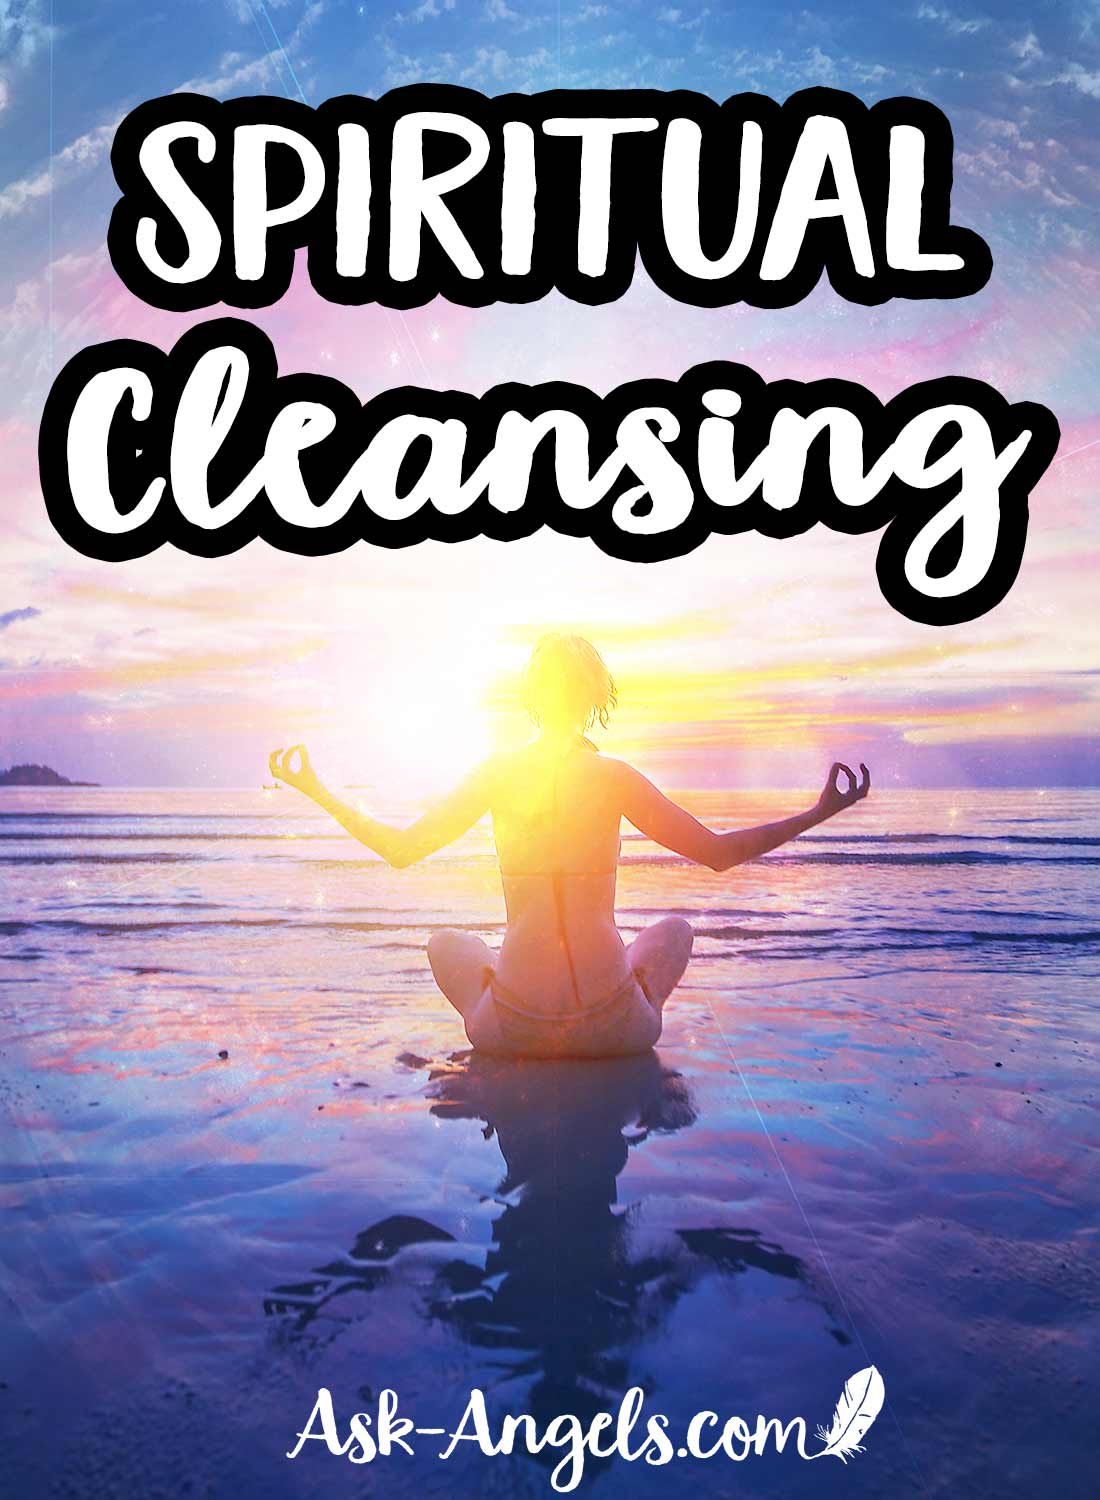 Spiritual cleansing is not only about cleansingdense energies, negativity, and blockages fromyour mind, body, and spirit... Spiritual cleansing is the process of breaking through old and outdated energy and releasing it into the lightso you can elevate your personalvibration to ride the wave of light, positive change, and new energy into the future.